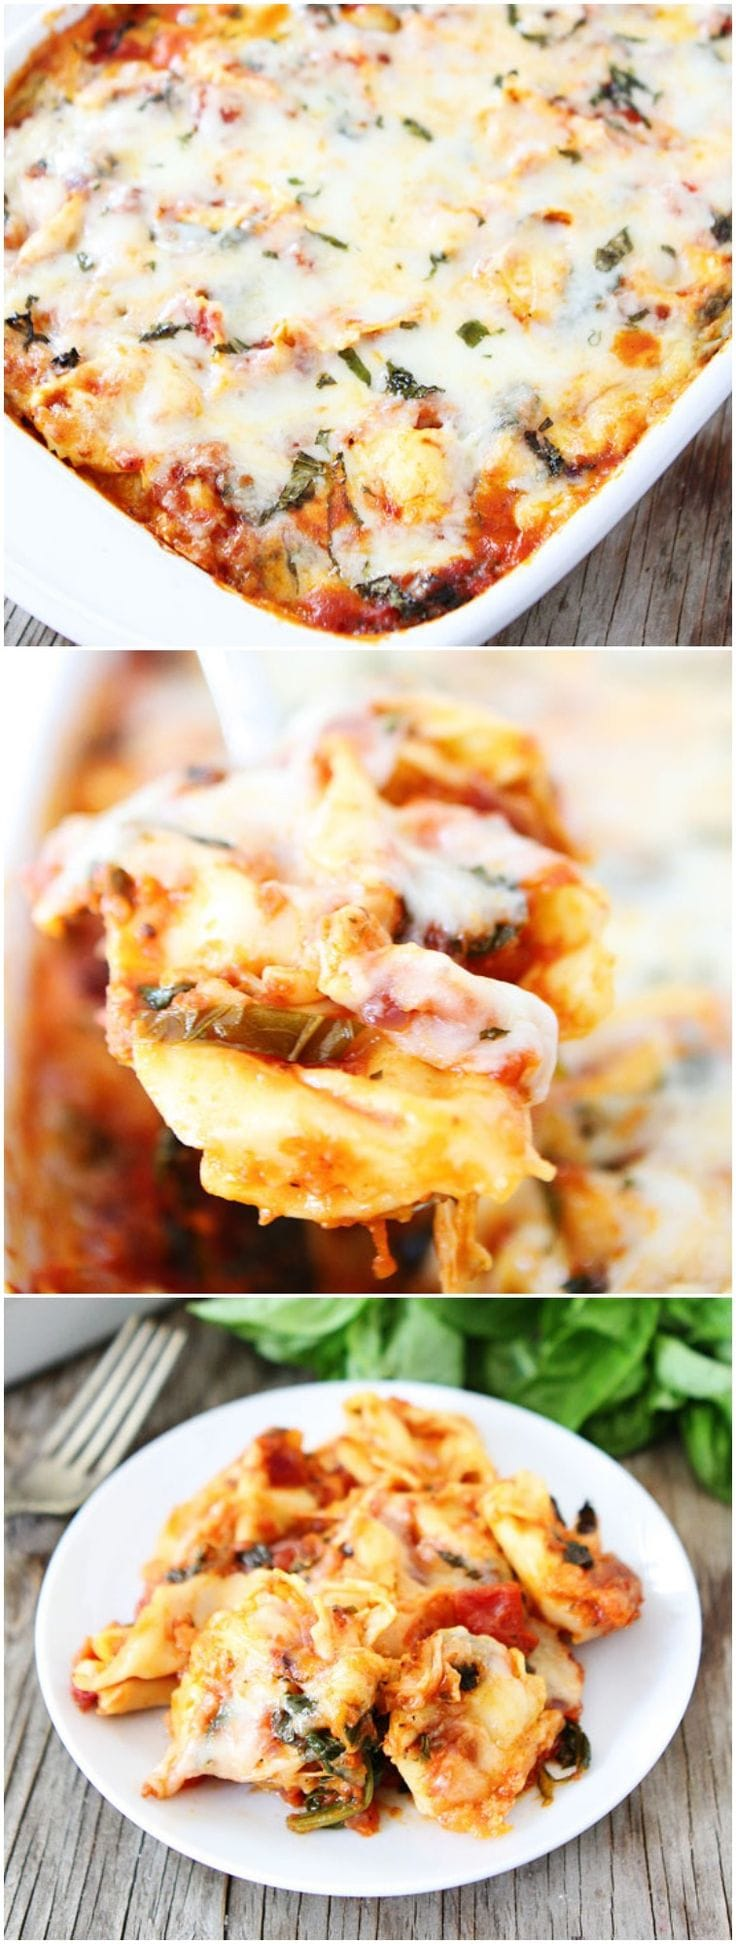 Easy Cheesy Baked Tortellini Recipe on twopeasandtheirpod.com Love this easy baked tortellini! It's one of our favorite dinners!